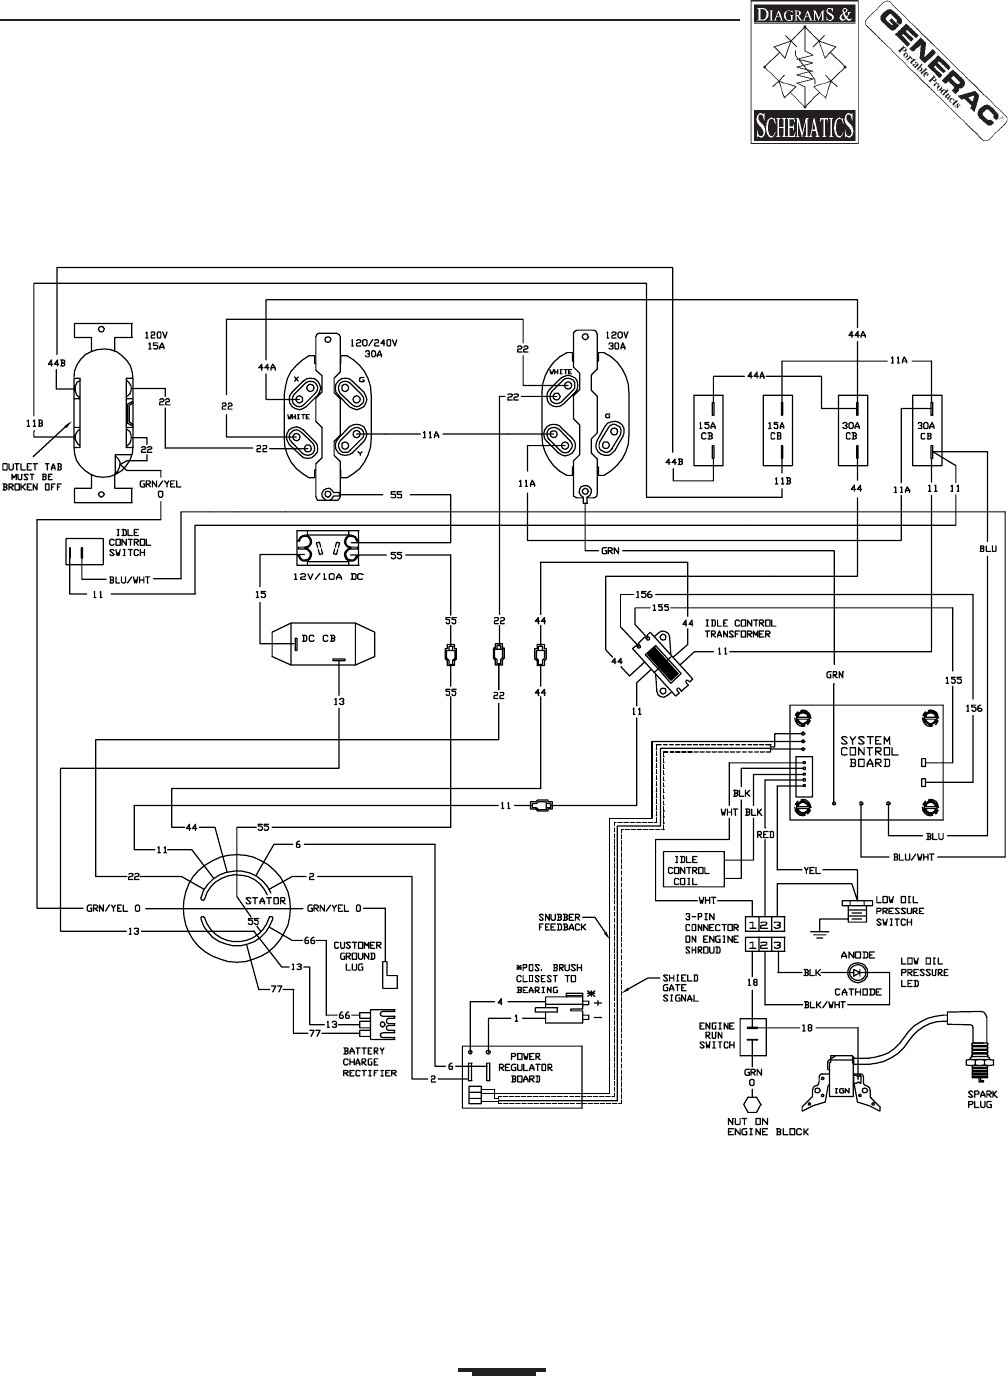 38c29e63 4610 4d0c 9aae d948c0ee2240 bgf?resize\\\\\\\\\\\\\=665%2C908 zig control panel wiring diagram zig wiring diagrams collection  at soozxer.org